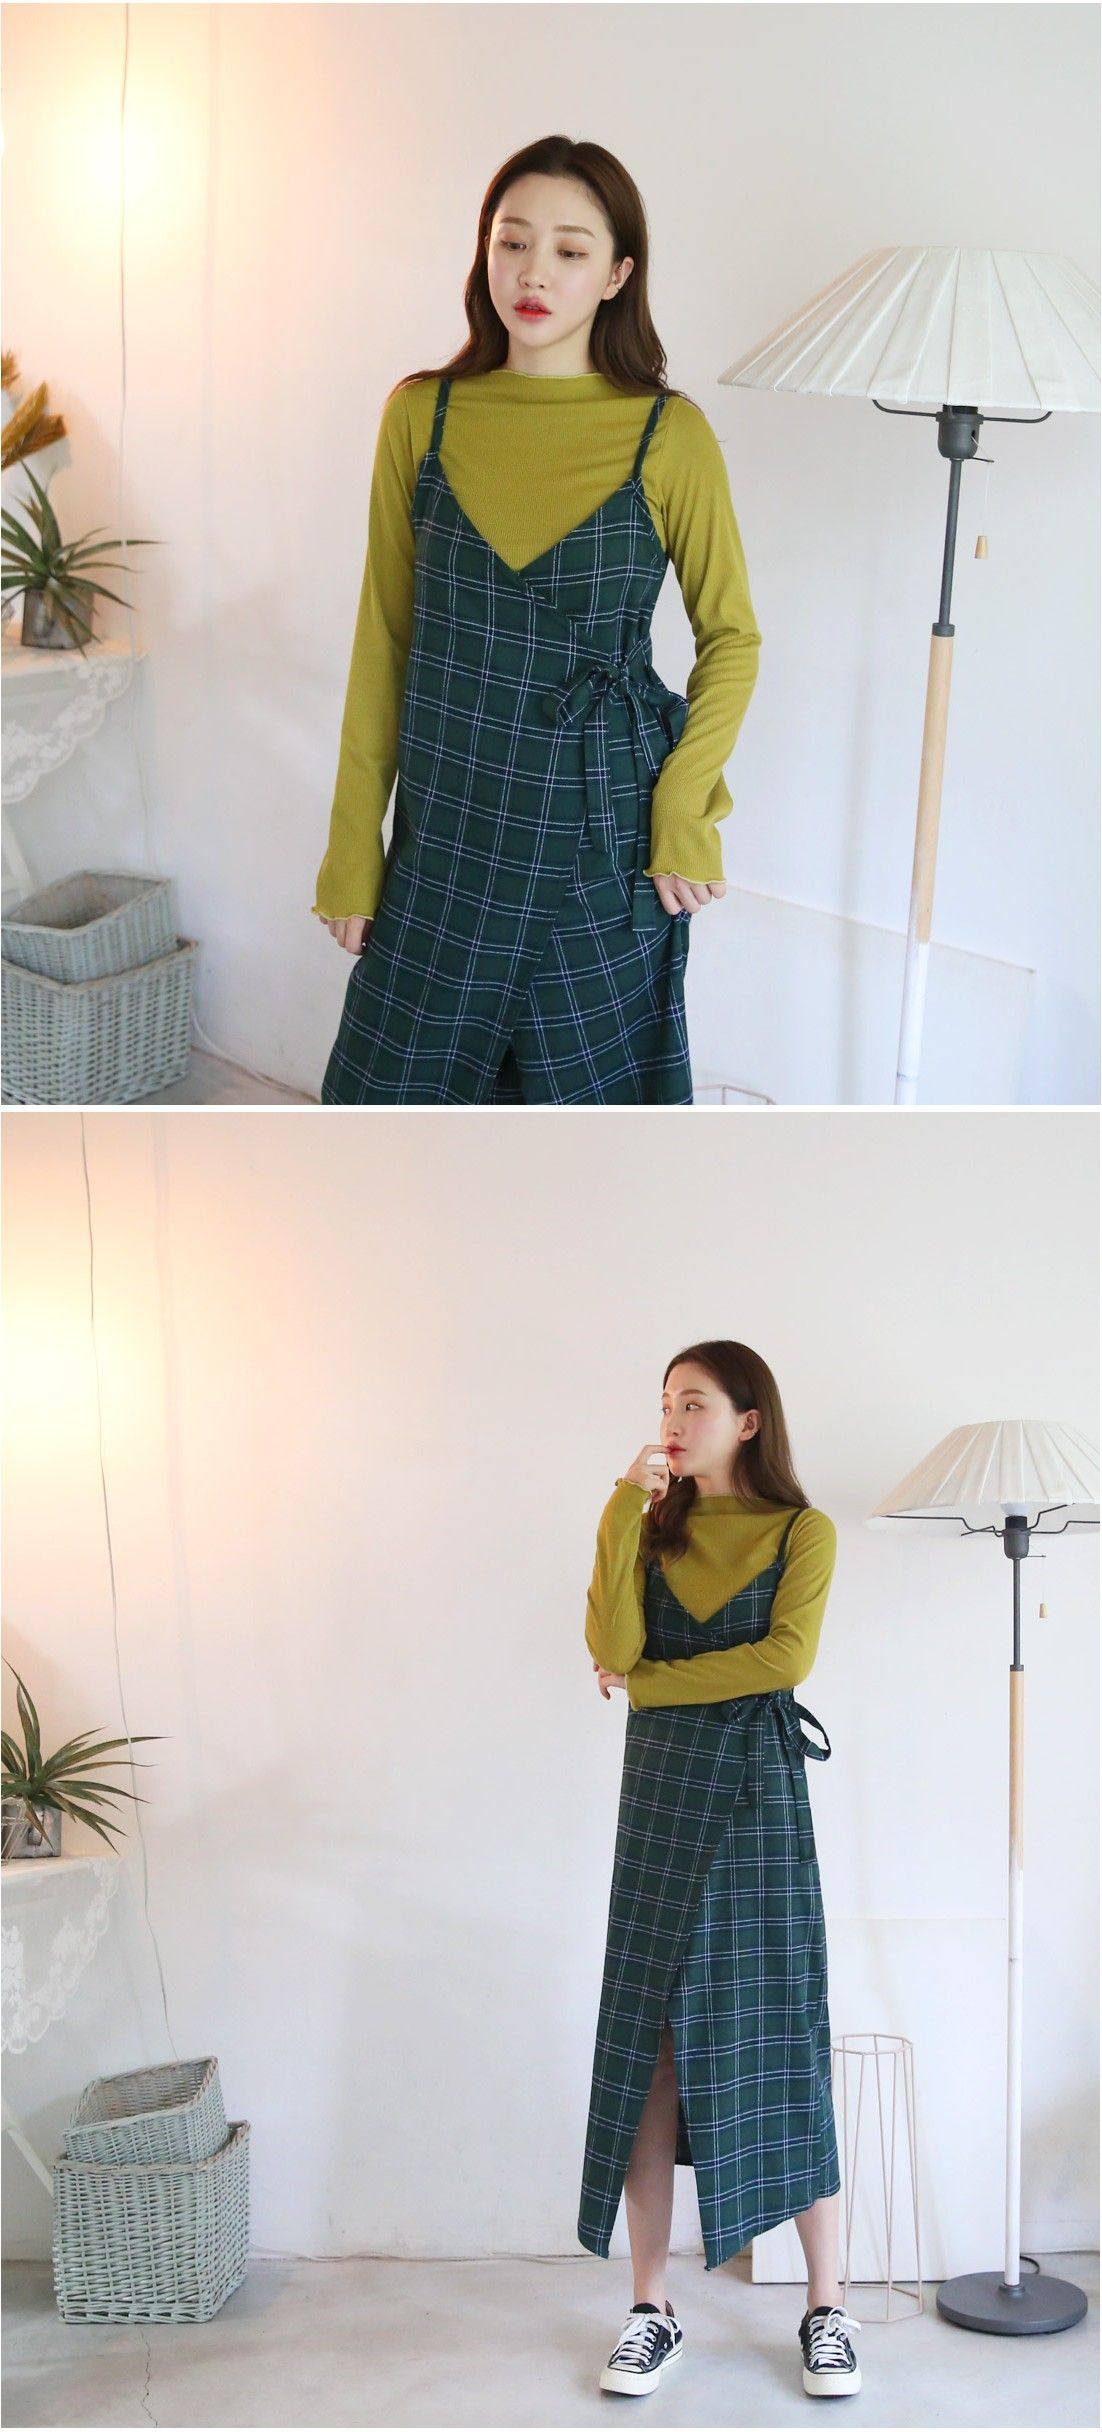 koreanstyle streetstyle outfit OOTD korean style street style outfit so  cute